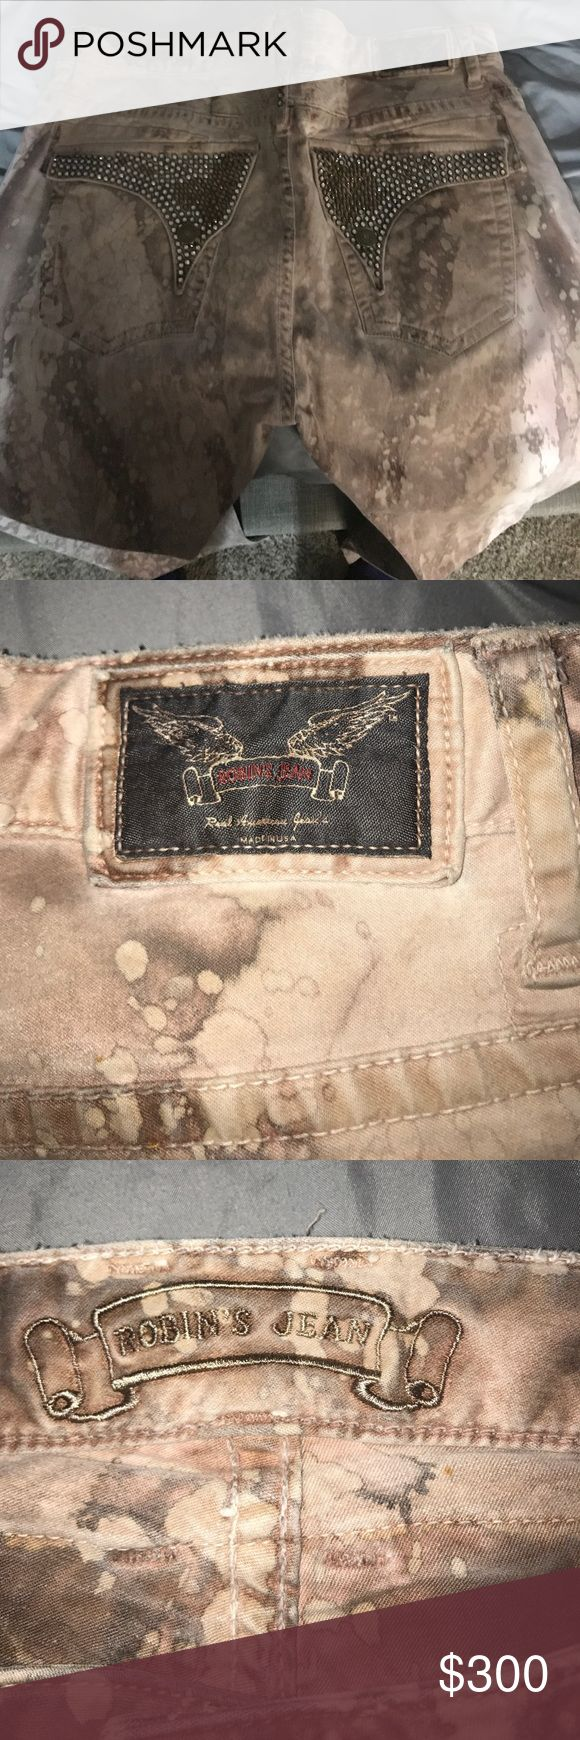 Robin jeans Size 36 robin jeans all Crystal still intact Robin's Jean Jeans Bootcut